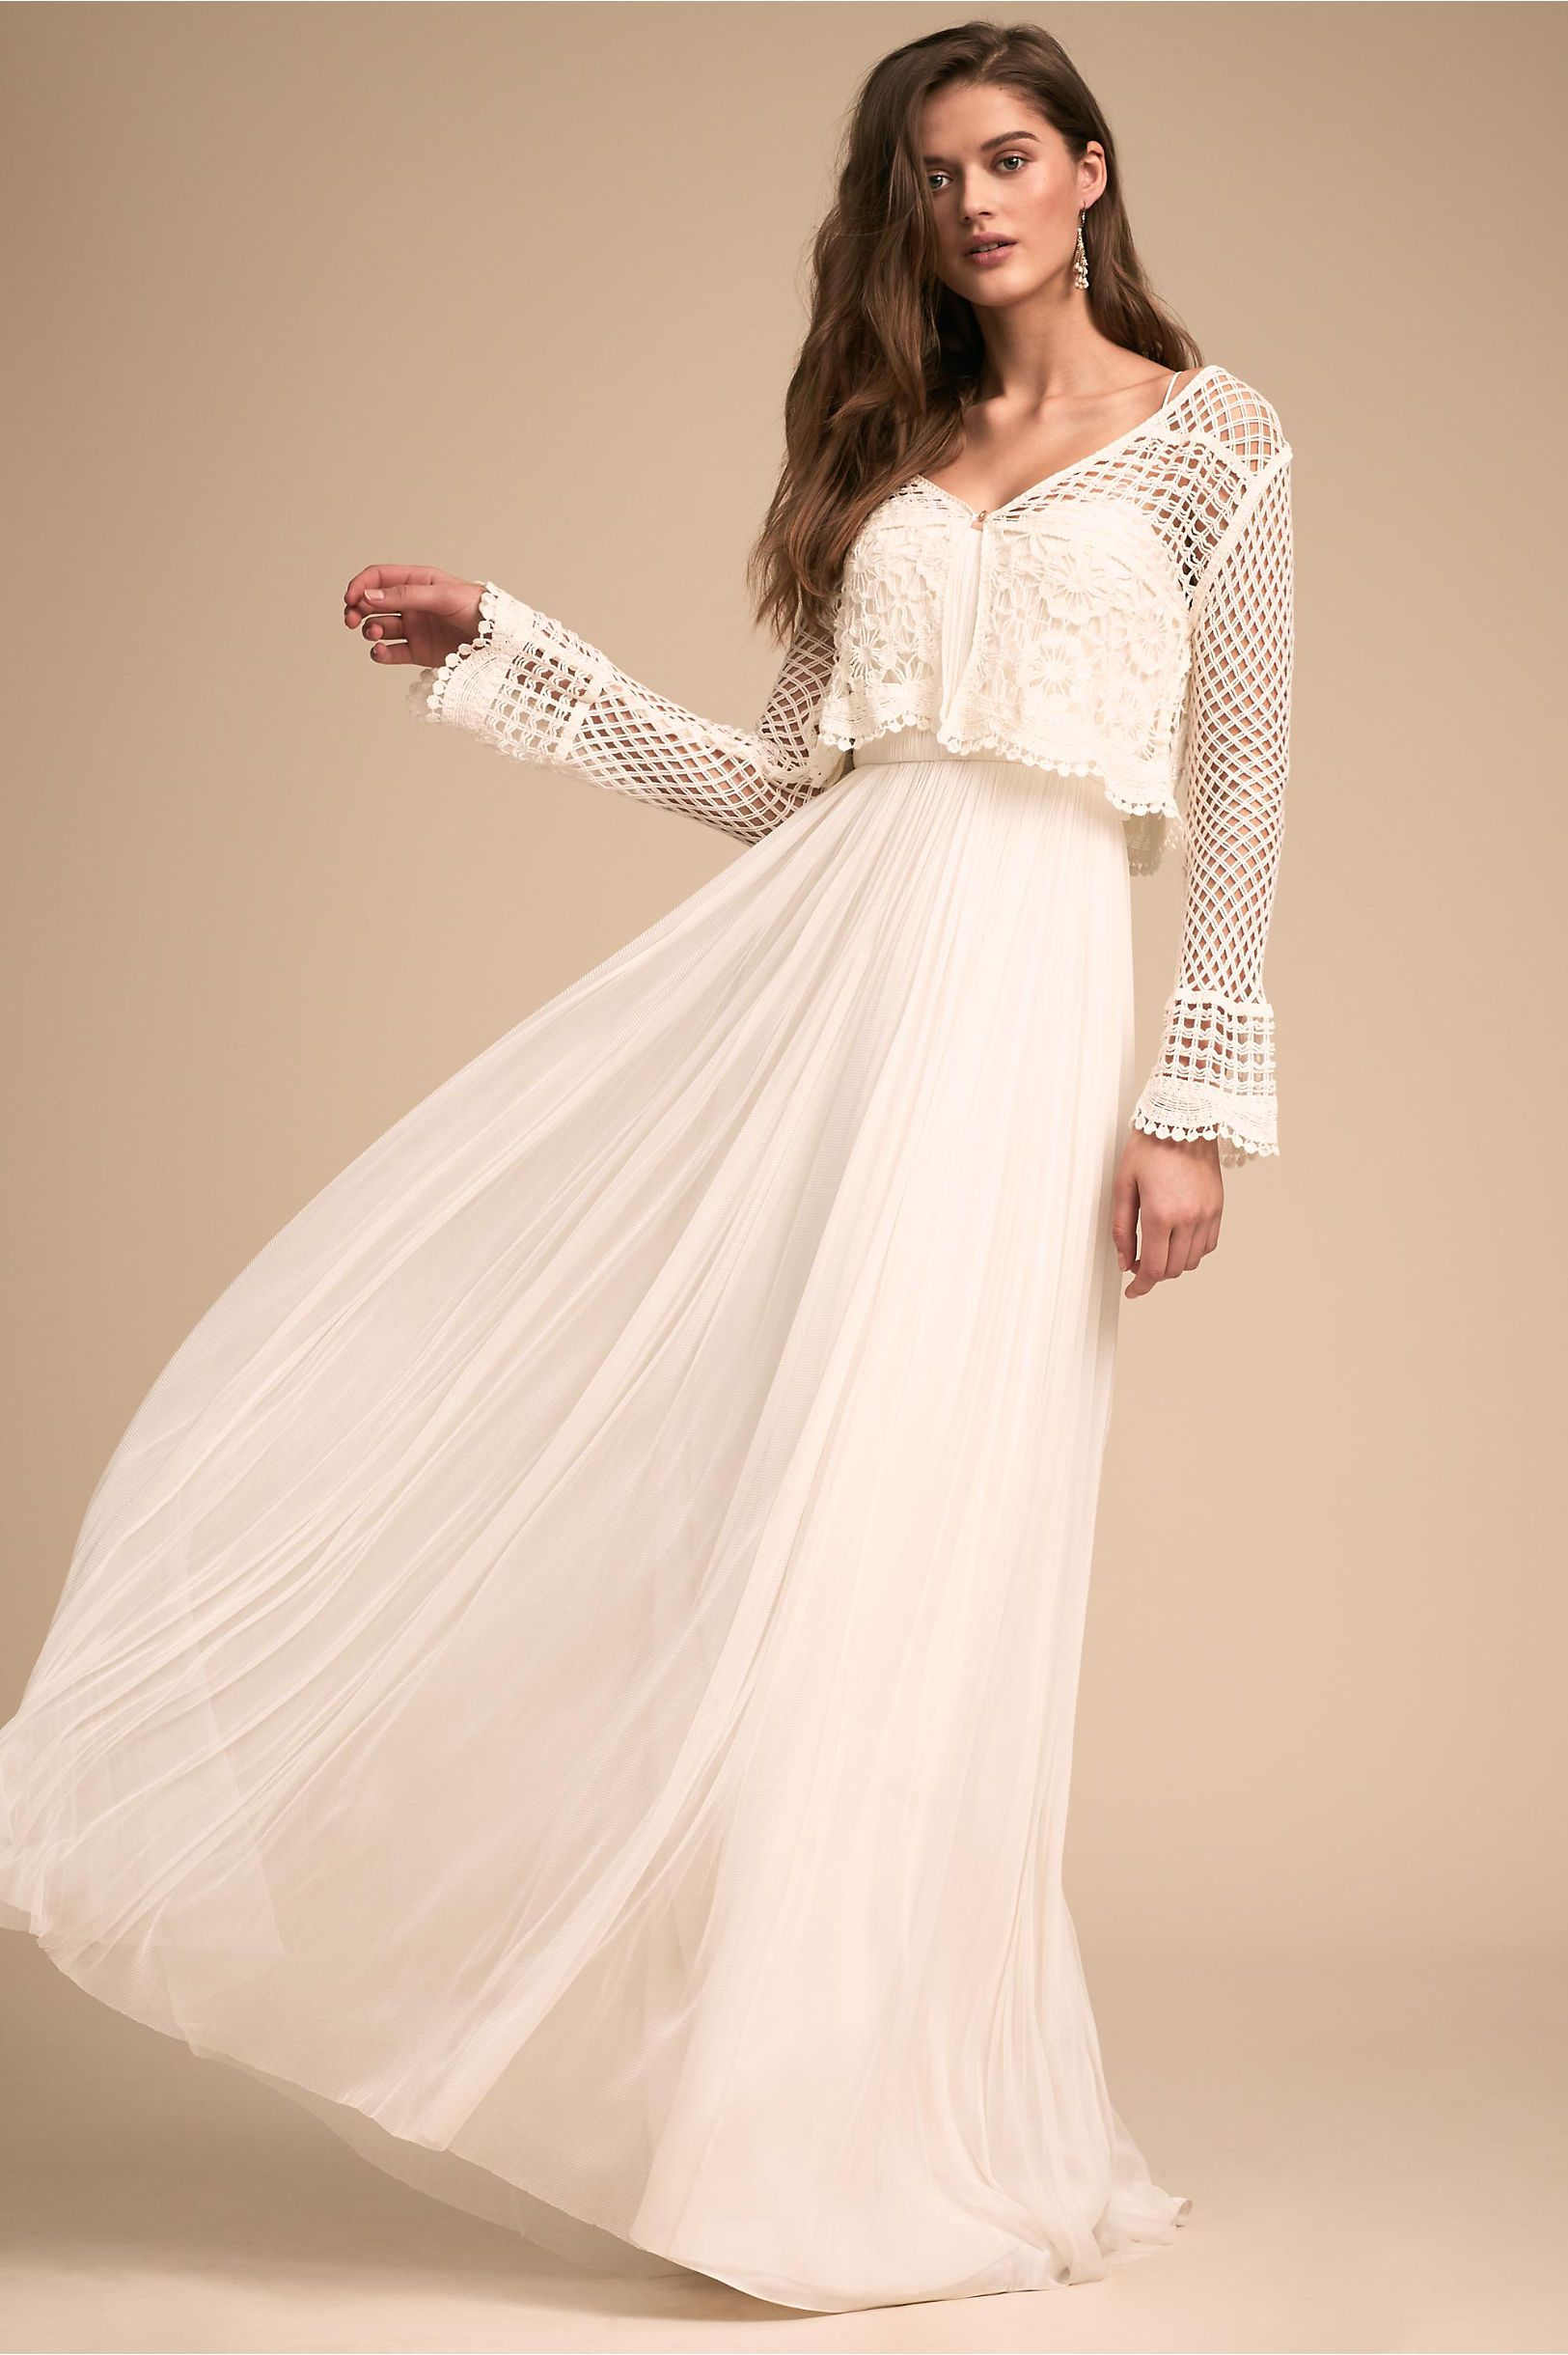 Are you getting married in fall or winter this cute cardigan will